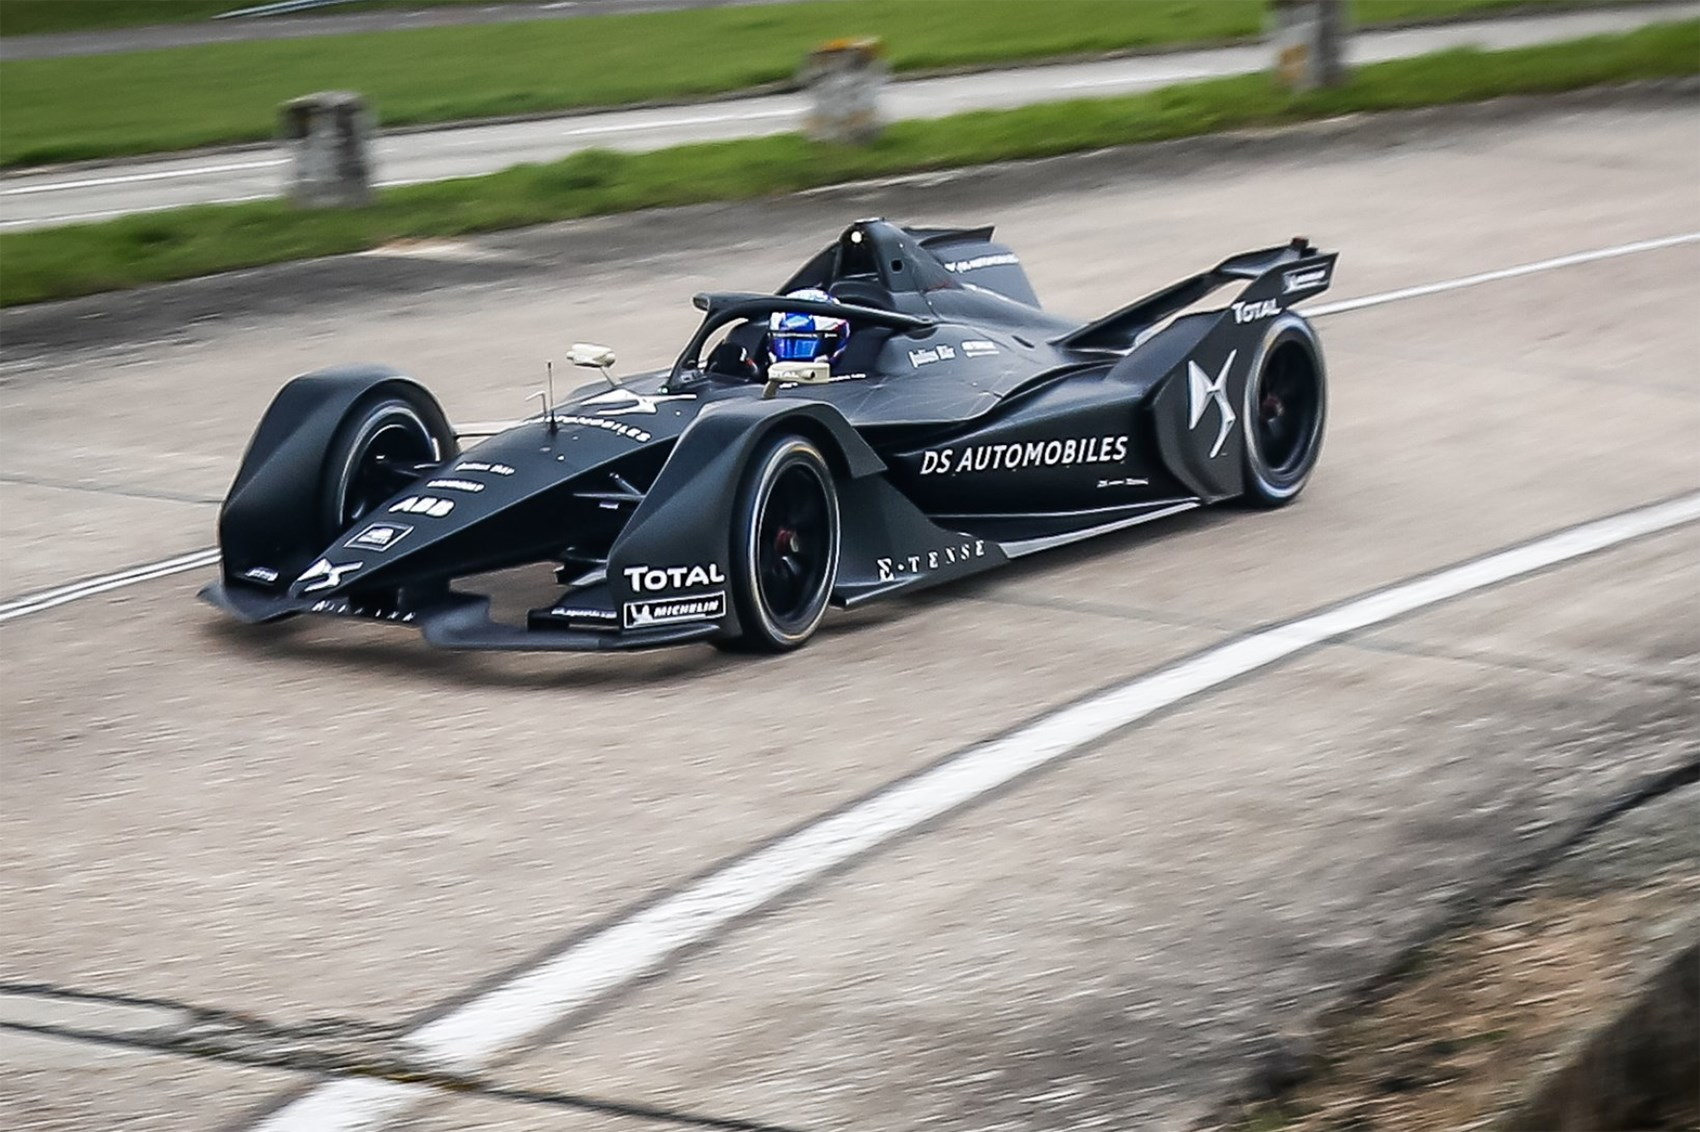 The Ds Performance Team Was First To Release Footage Of Its 2018 19 Car In Action Nissan Formula E